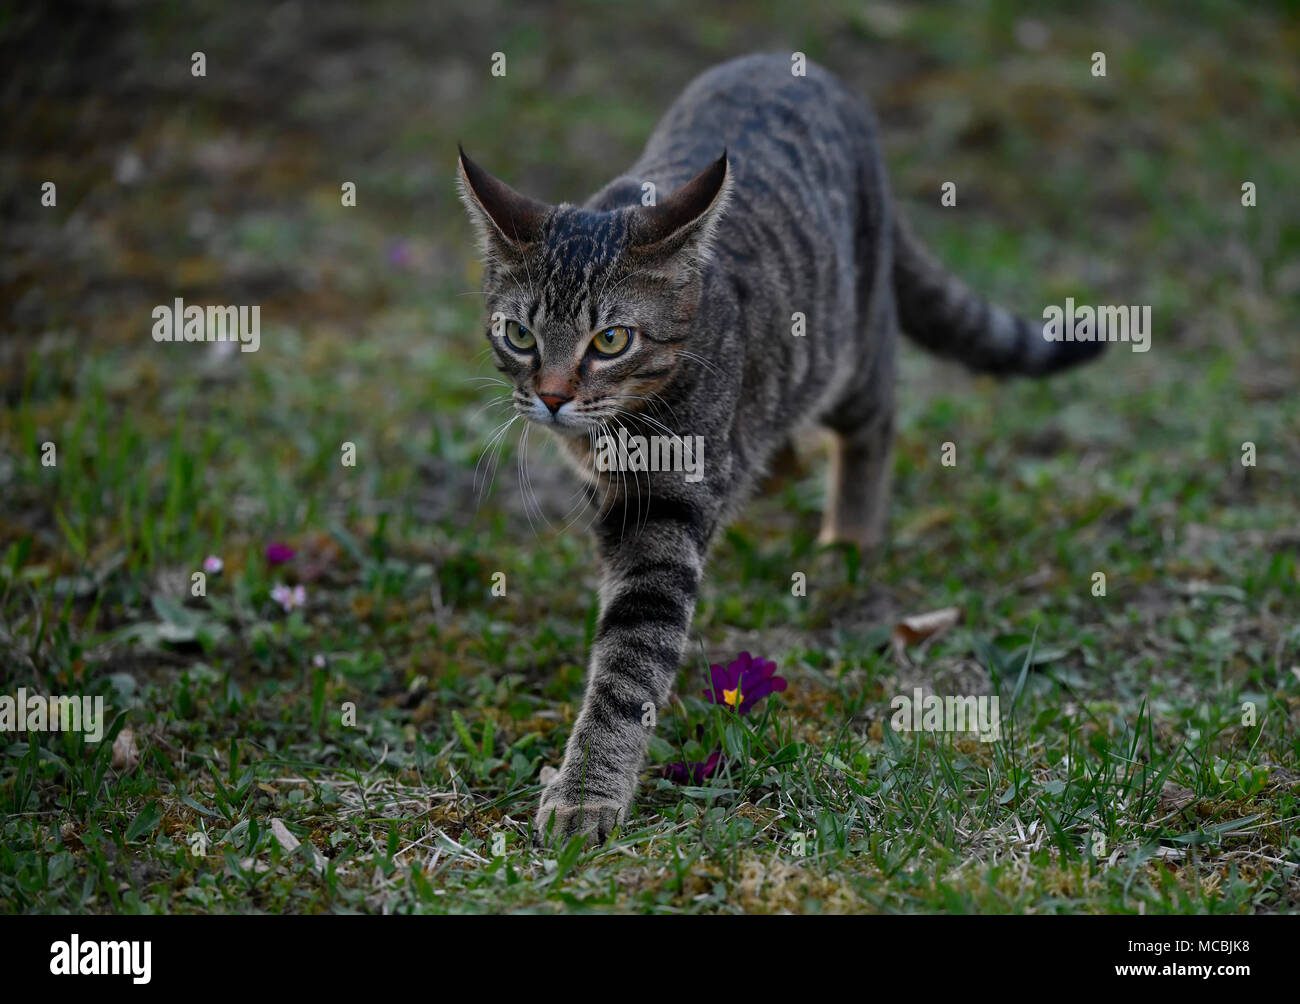 Domestic cat, tabby, kitten 6 months, runs over meadow, Germany - Stock Image